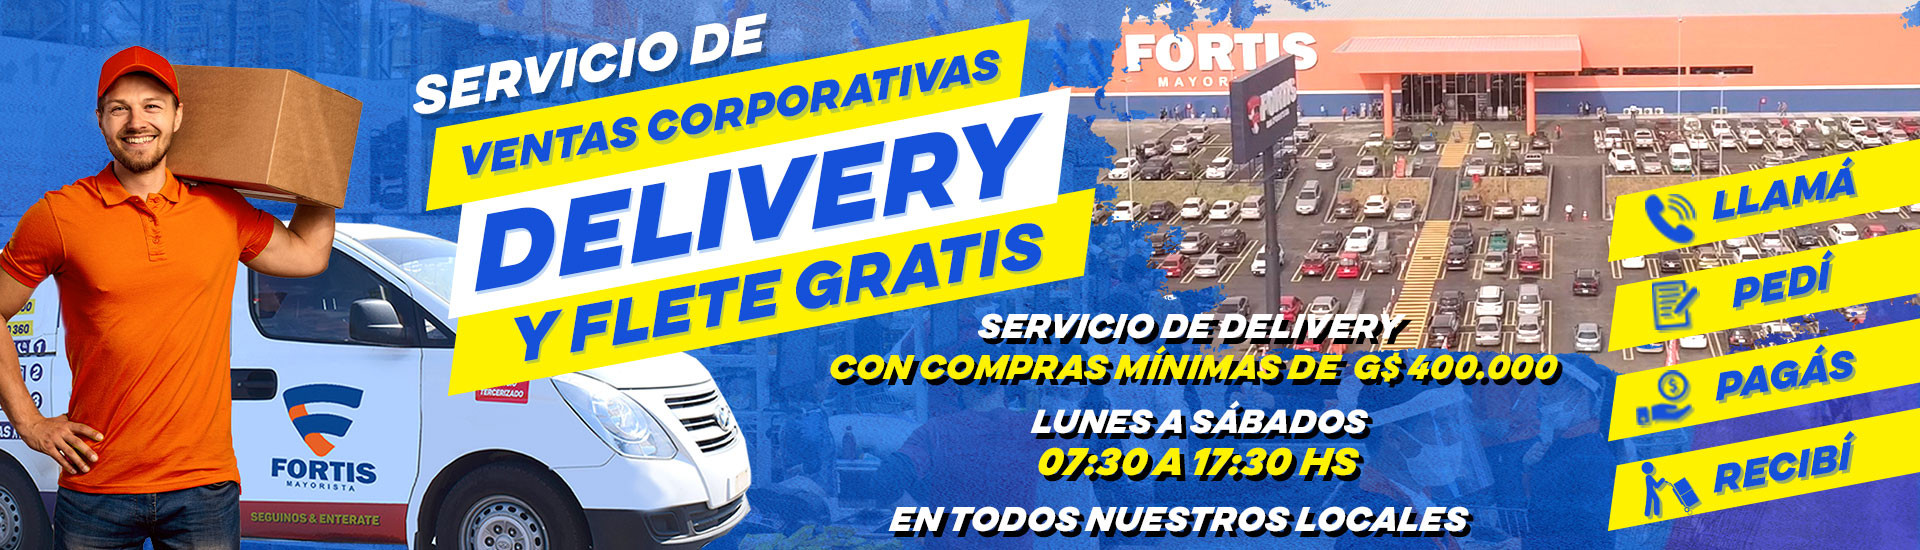 FORTIS DELIVERY